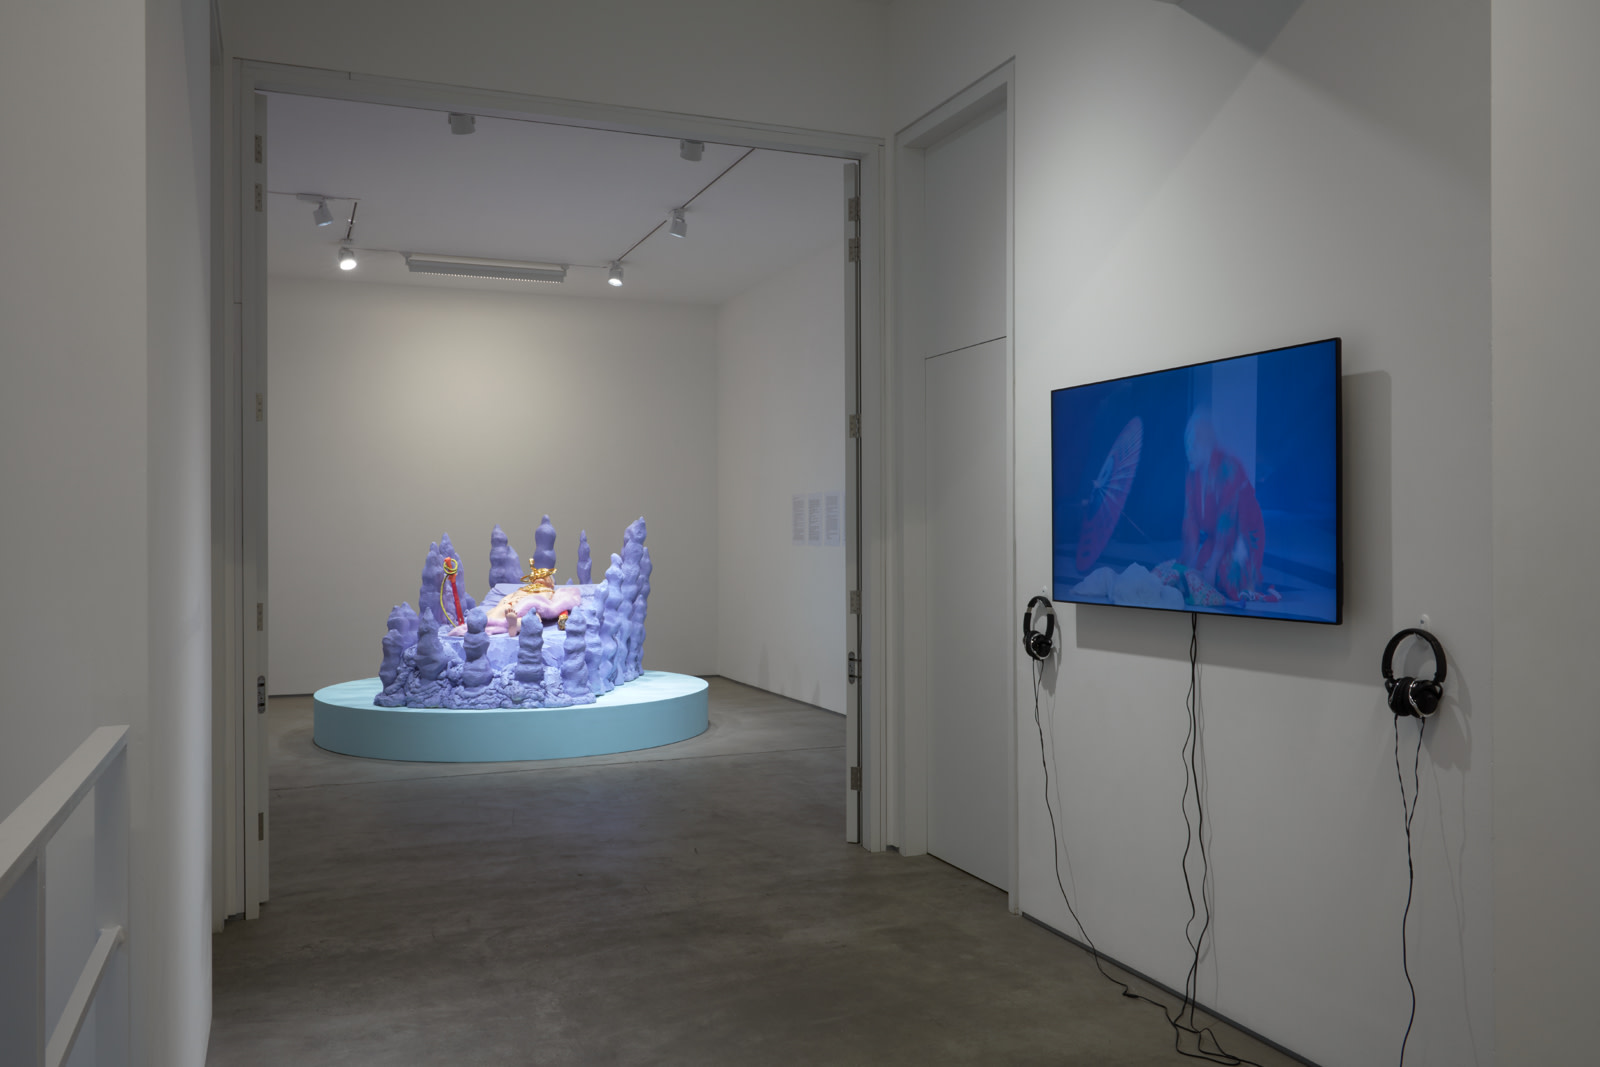 "<div class=""artwork_caption""><p>Installation View, 2017<br />Photo by Robert Glowacki</p></div>"